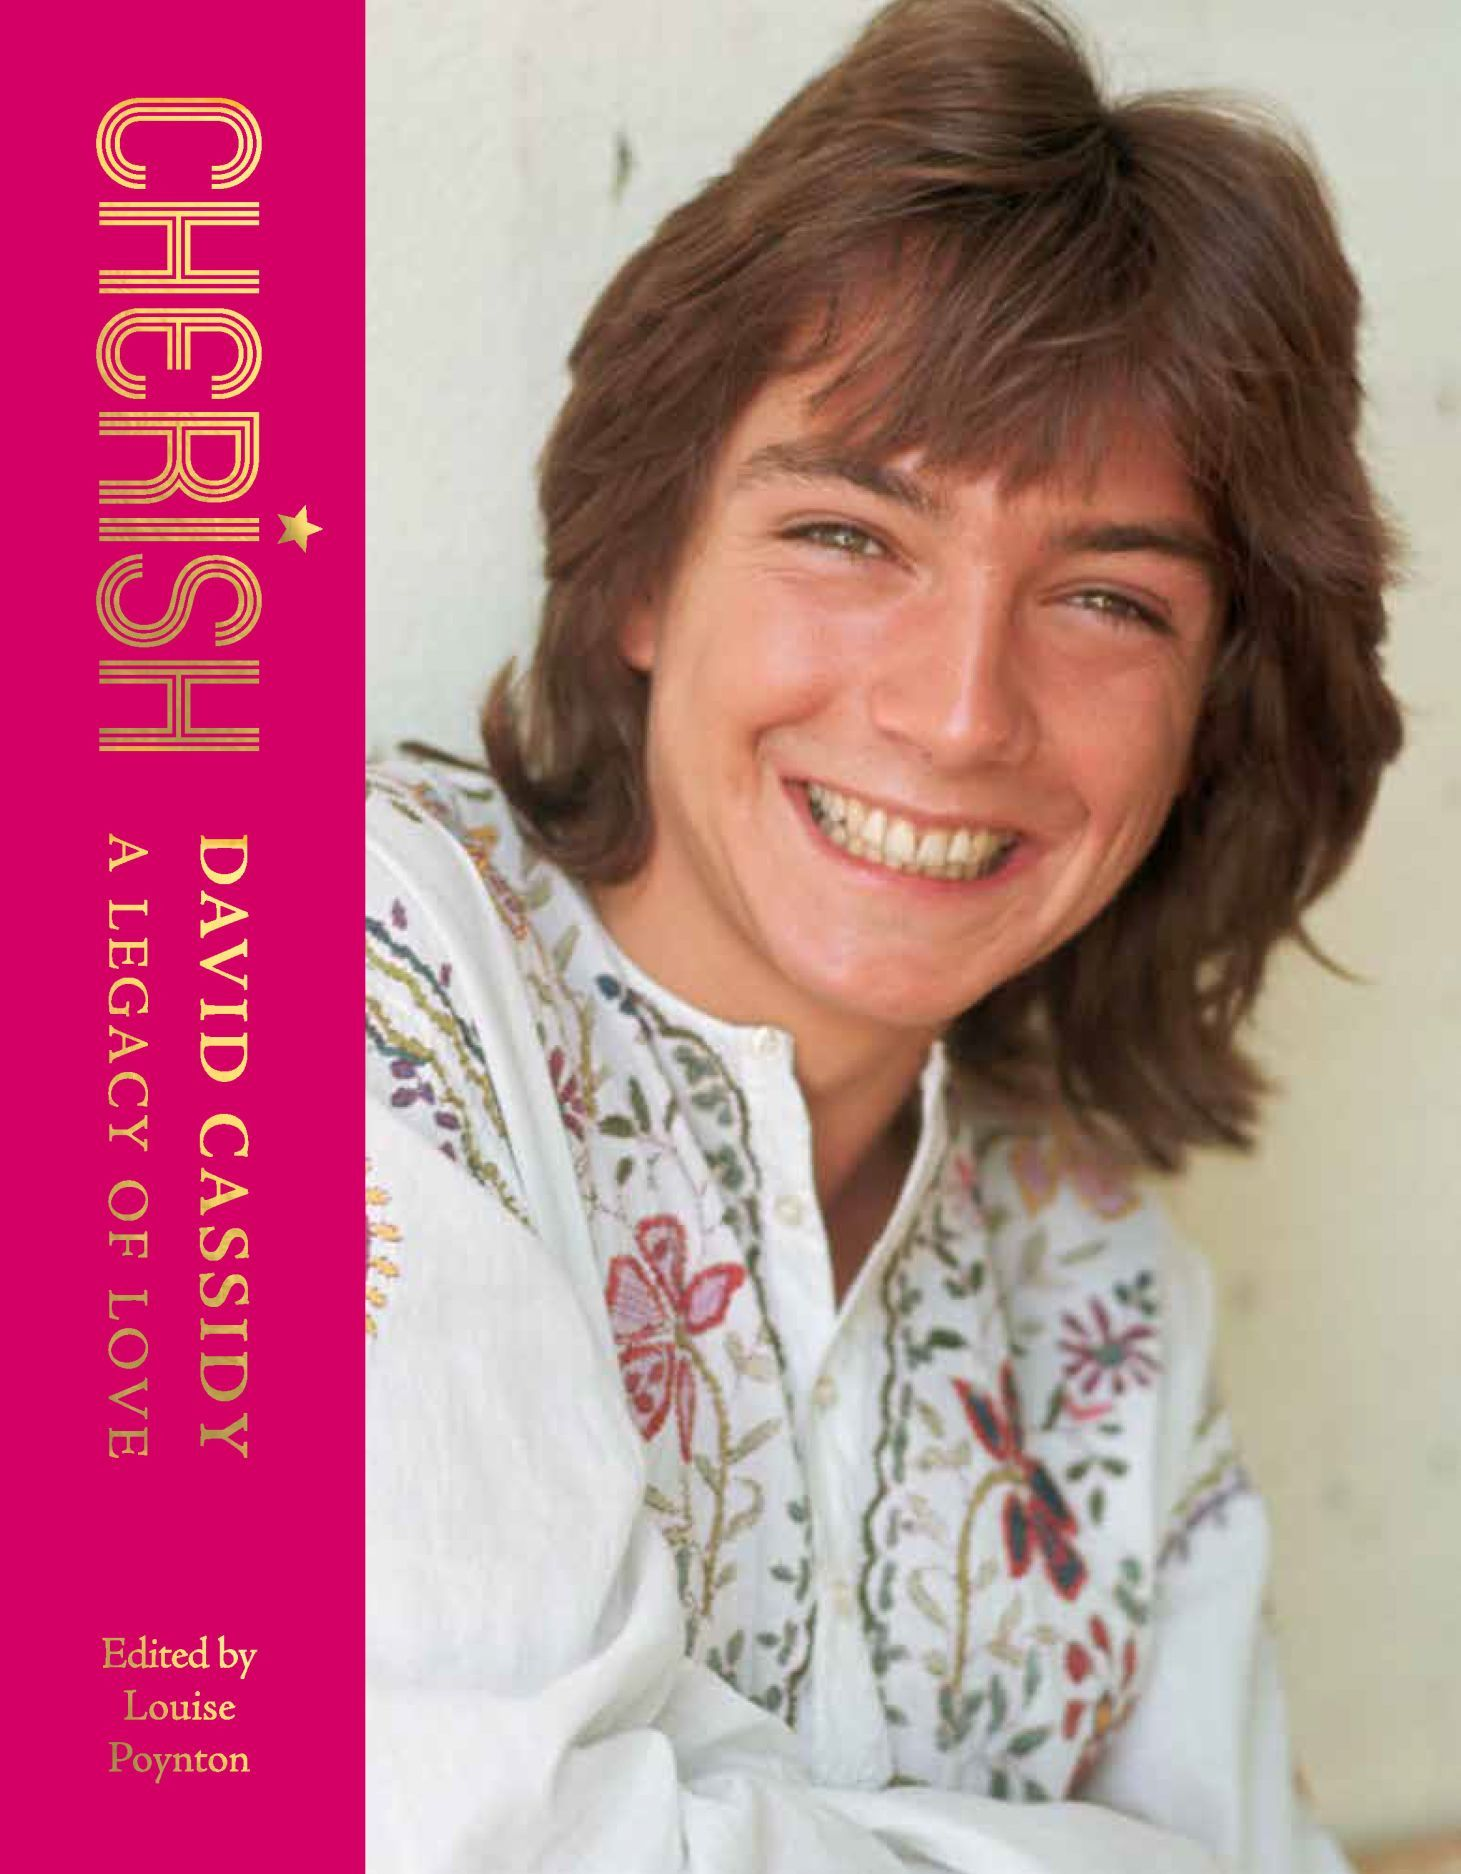 Cherish: David Cassidy—A Legacy of Love